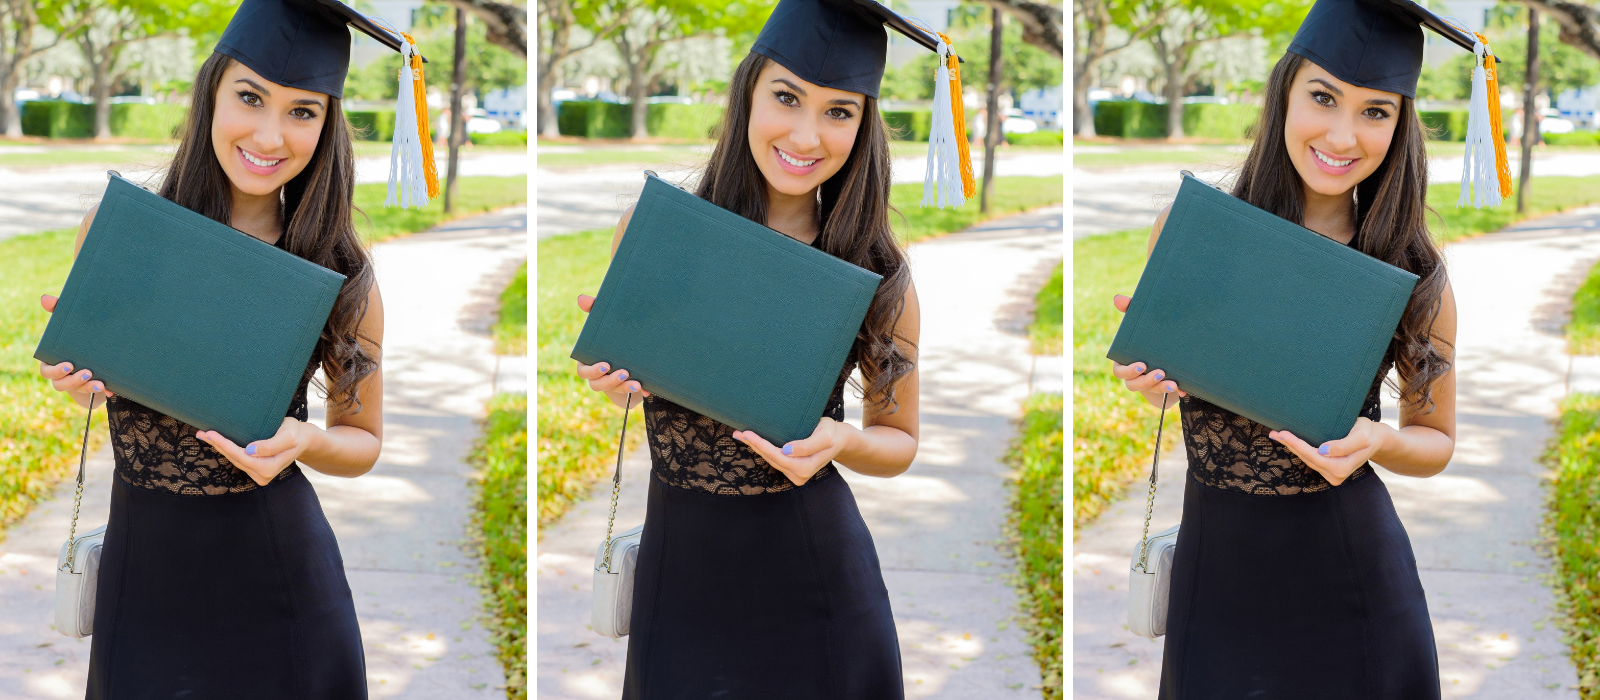 35 Best High School Graduation Gifts for Her that She'll Obsess Over